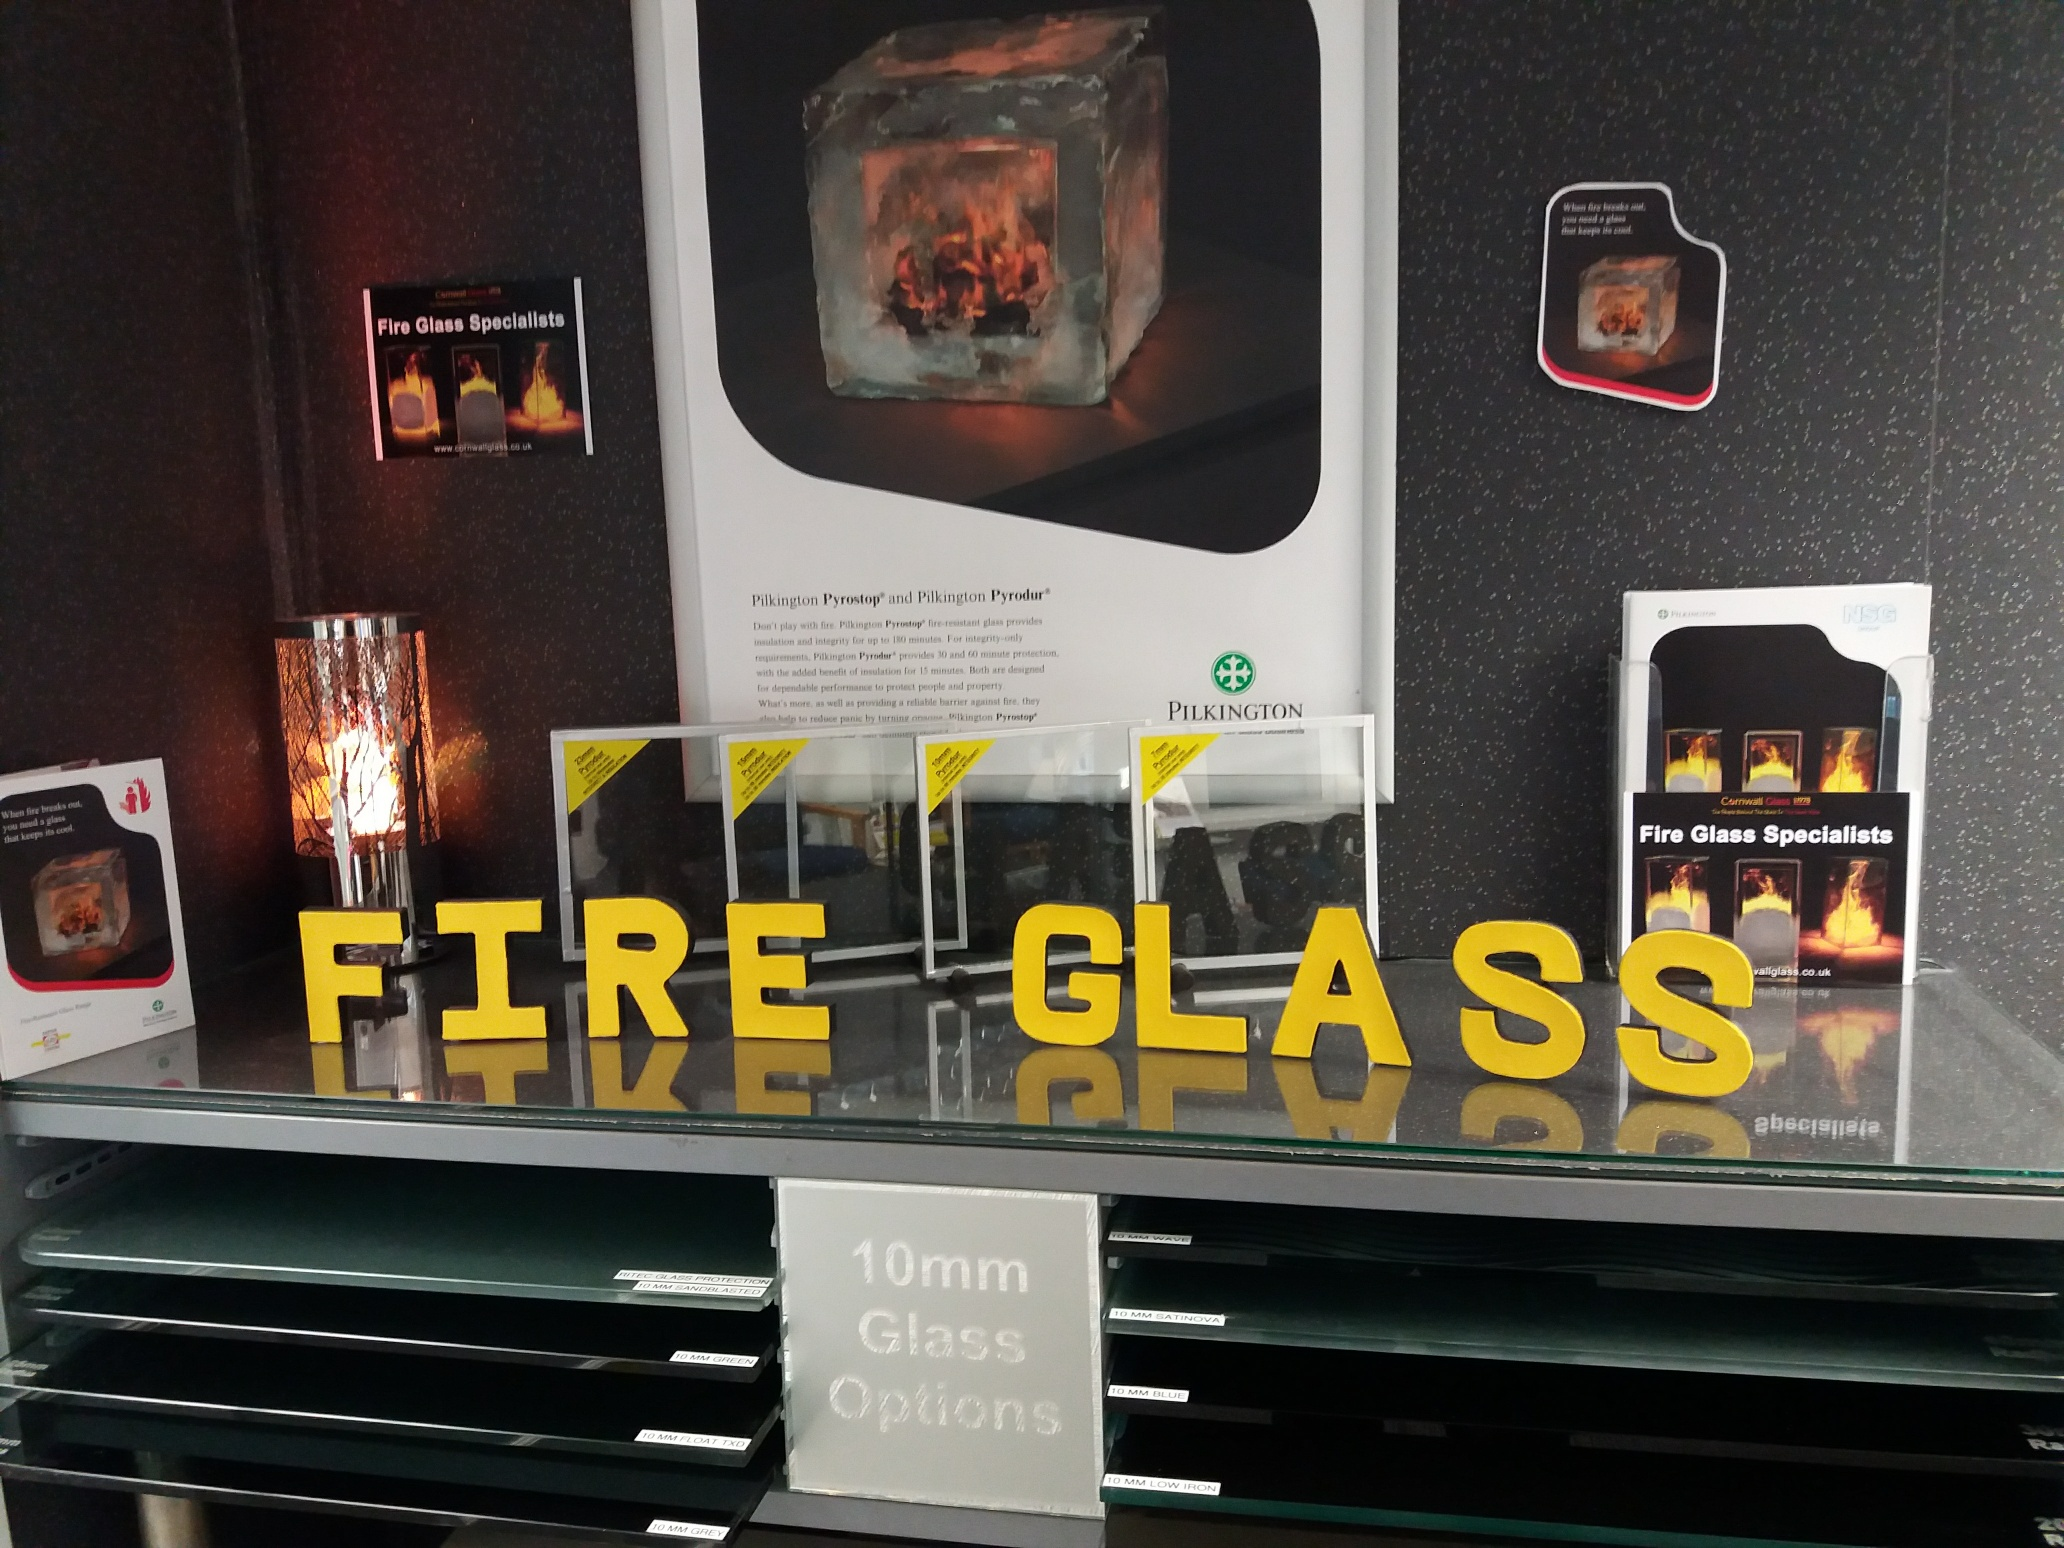 Exeter Fire Glass